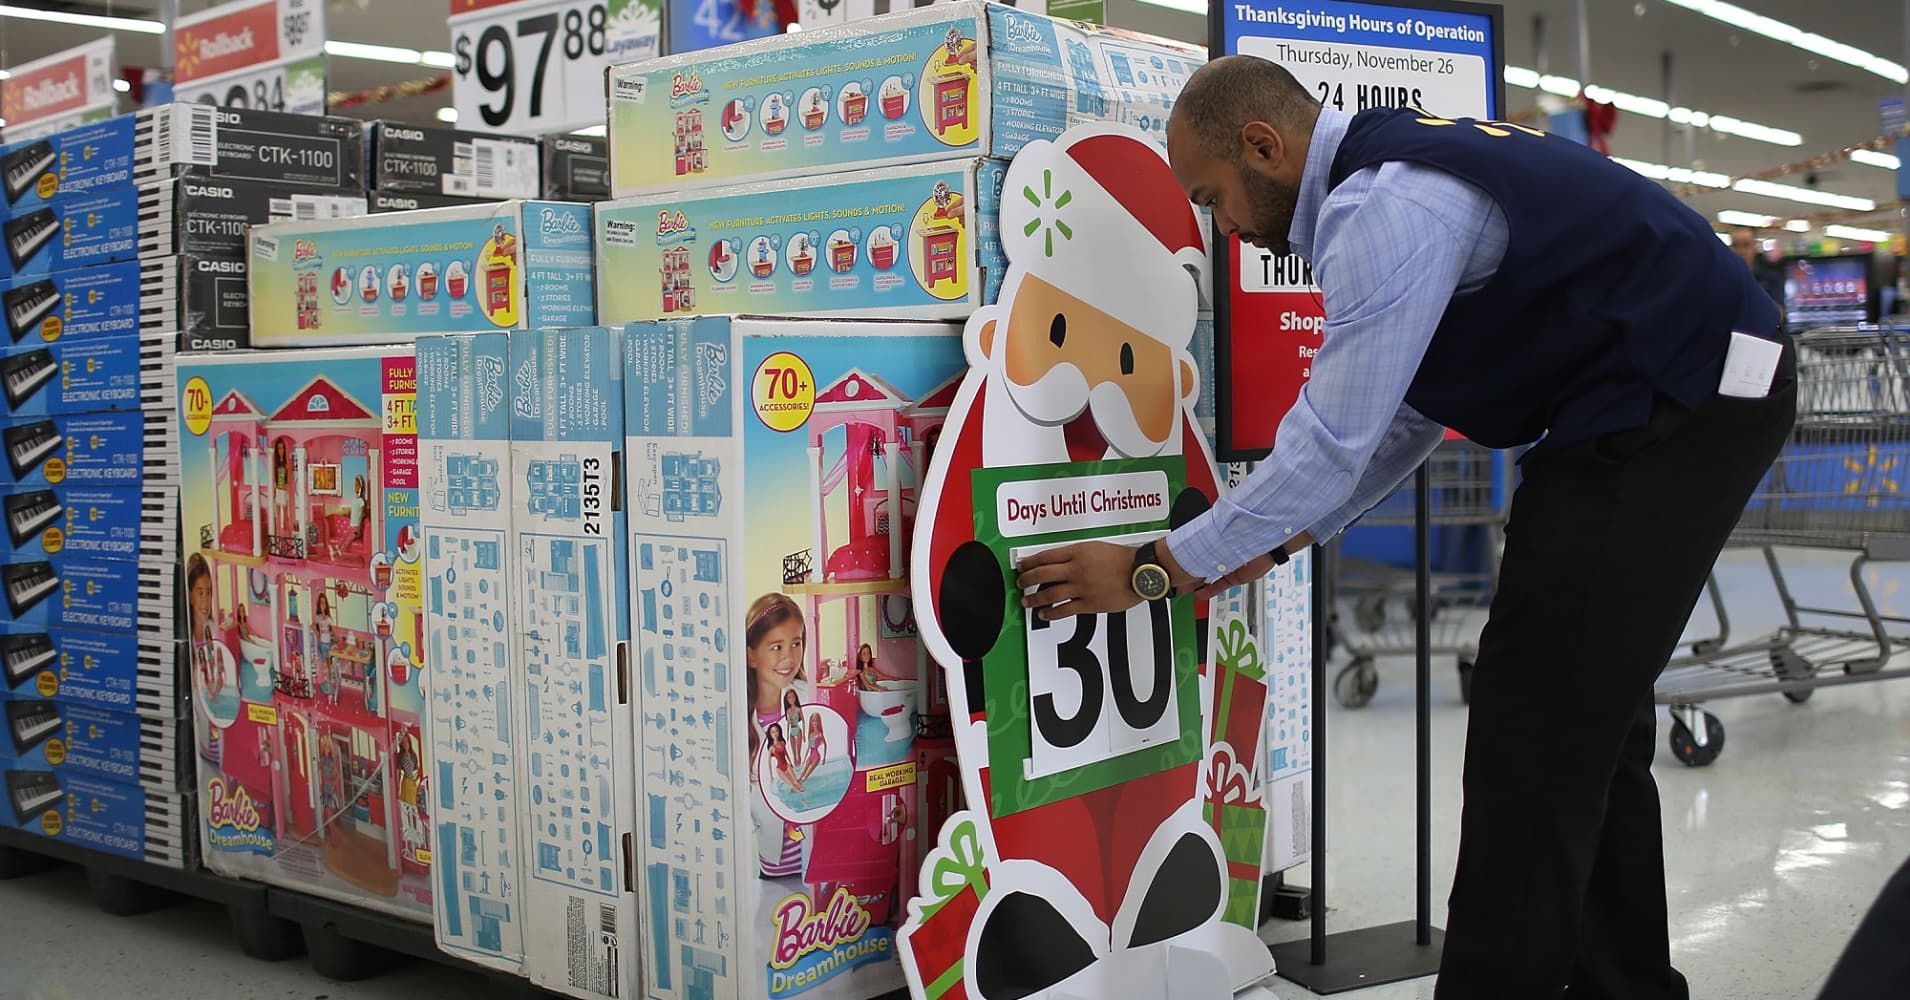 Jonathan Mary fixes the sign indicating that there are 30 more days until Christmas at a Walmart store in Miami, Florida.